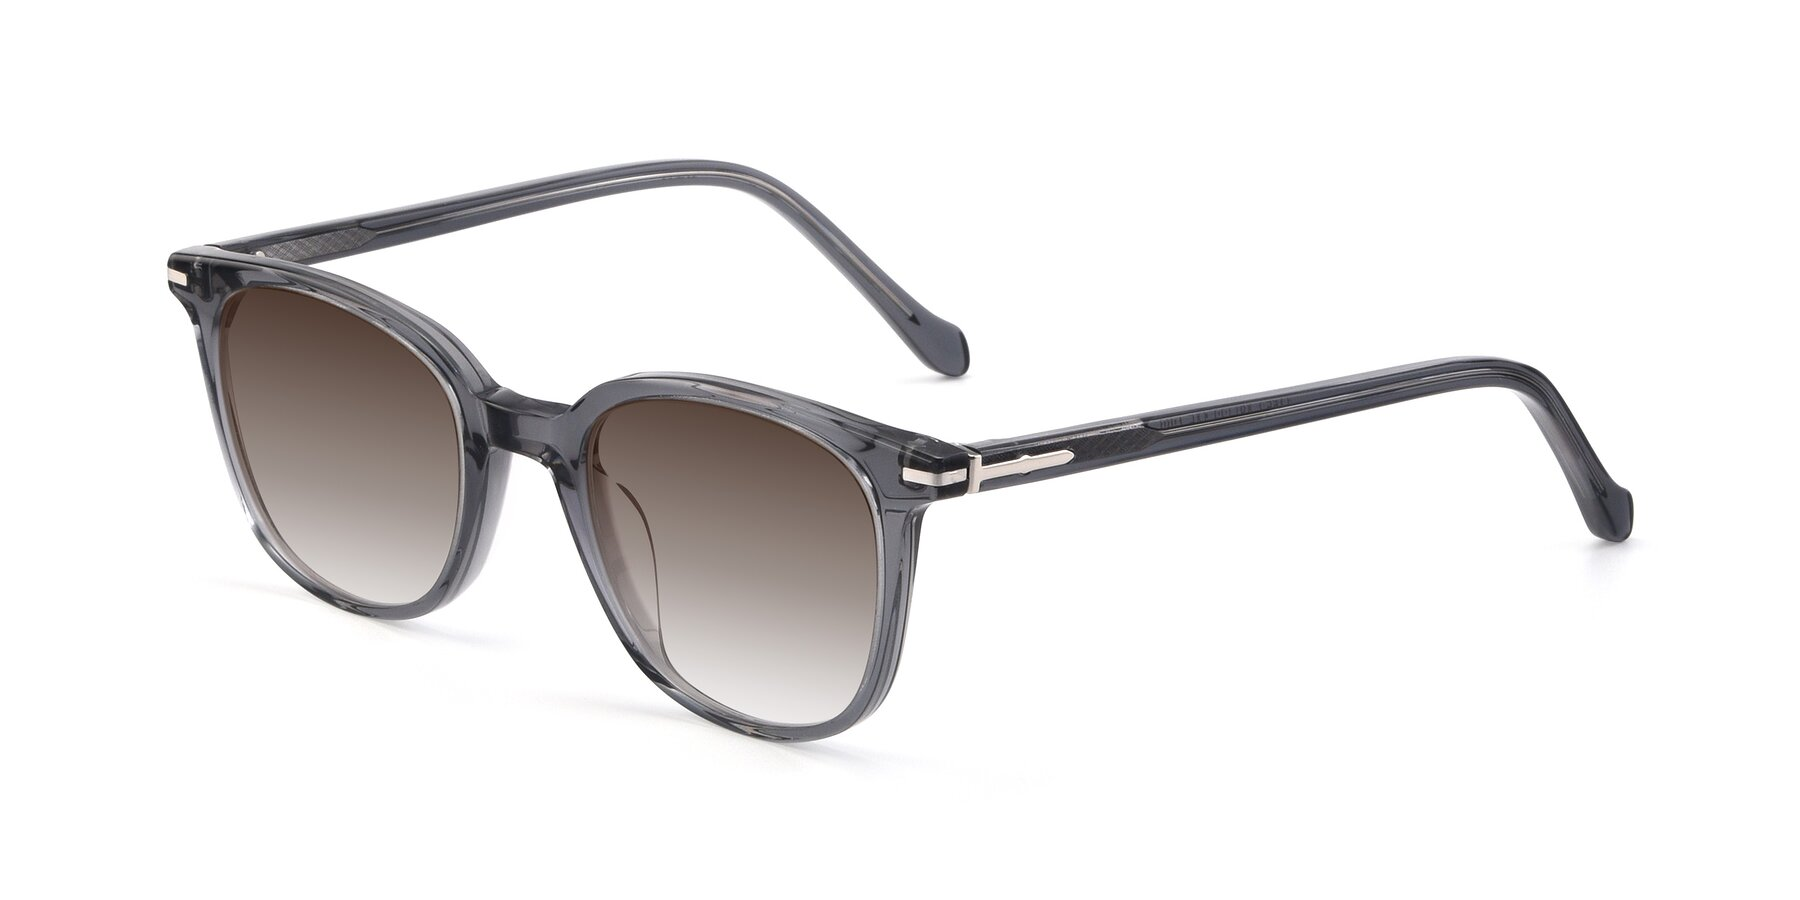 Angle of 17562 in Transparent Grey with Brown Gradient Lenses